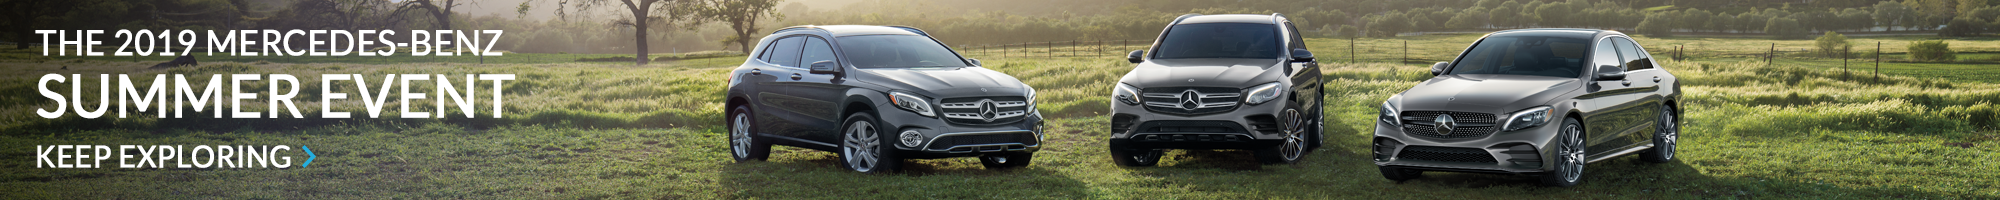 Mercedes-Benz Dealer in West Caldwell, NJ | Used Cars West Caldwell